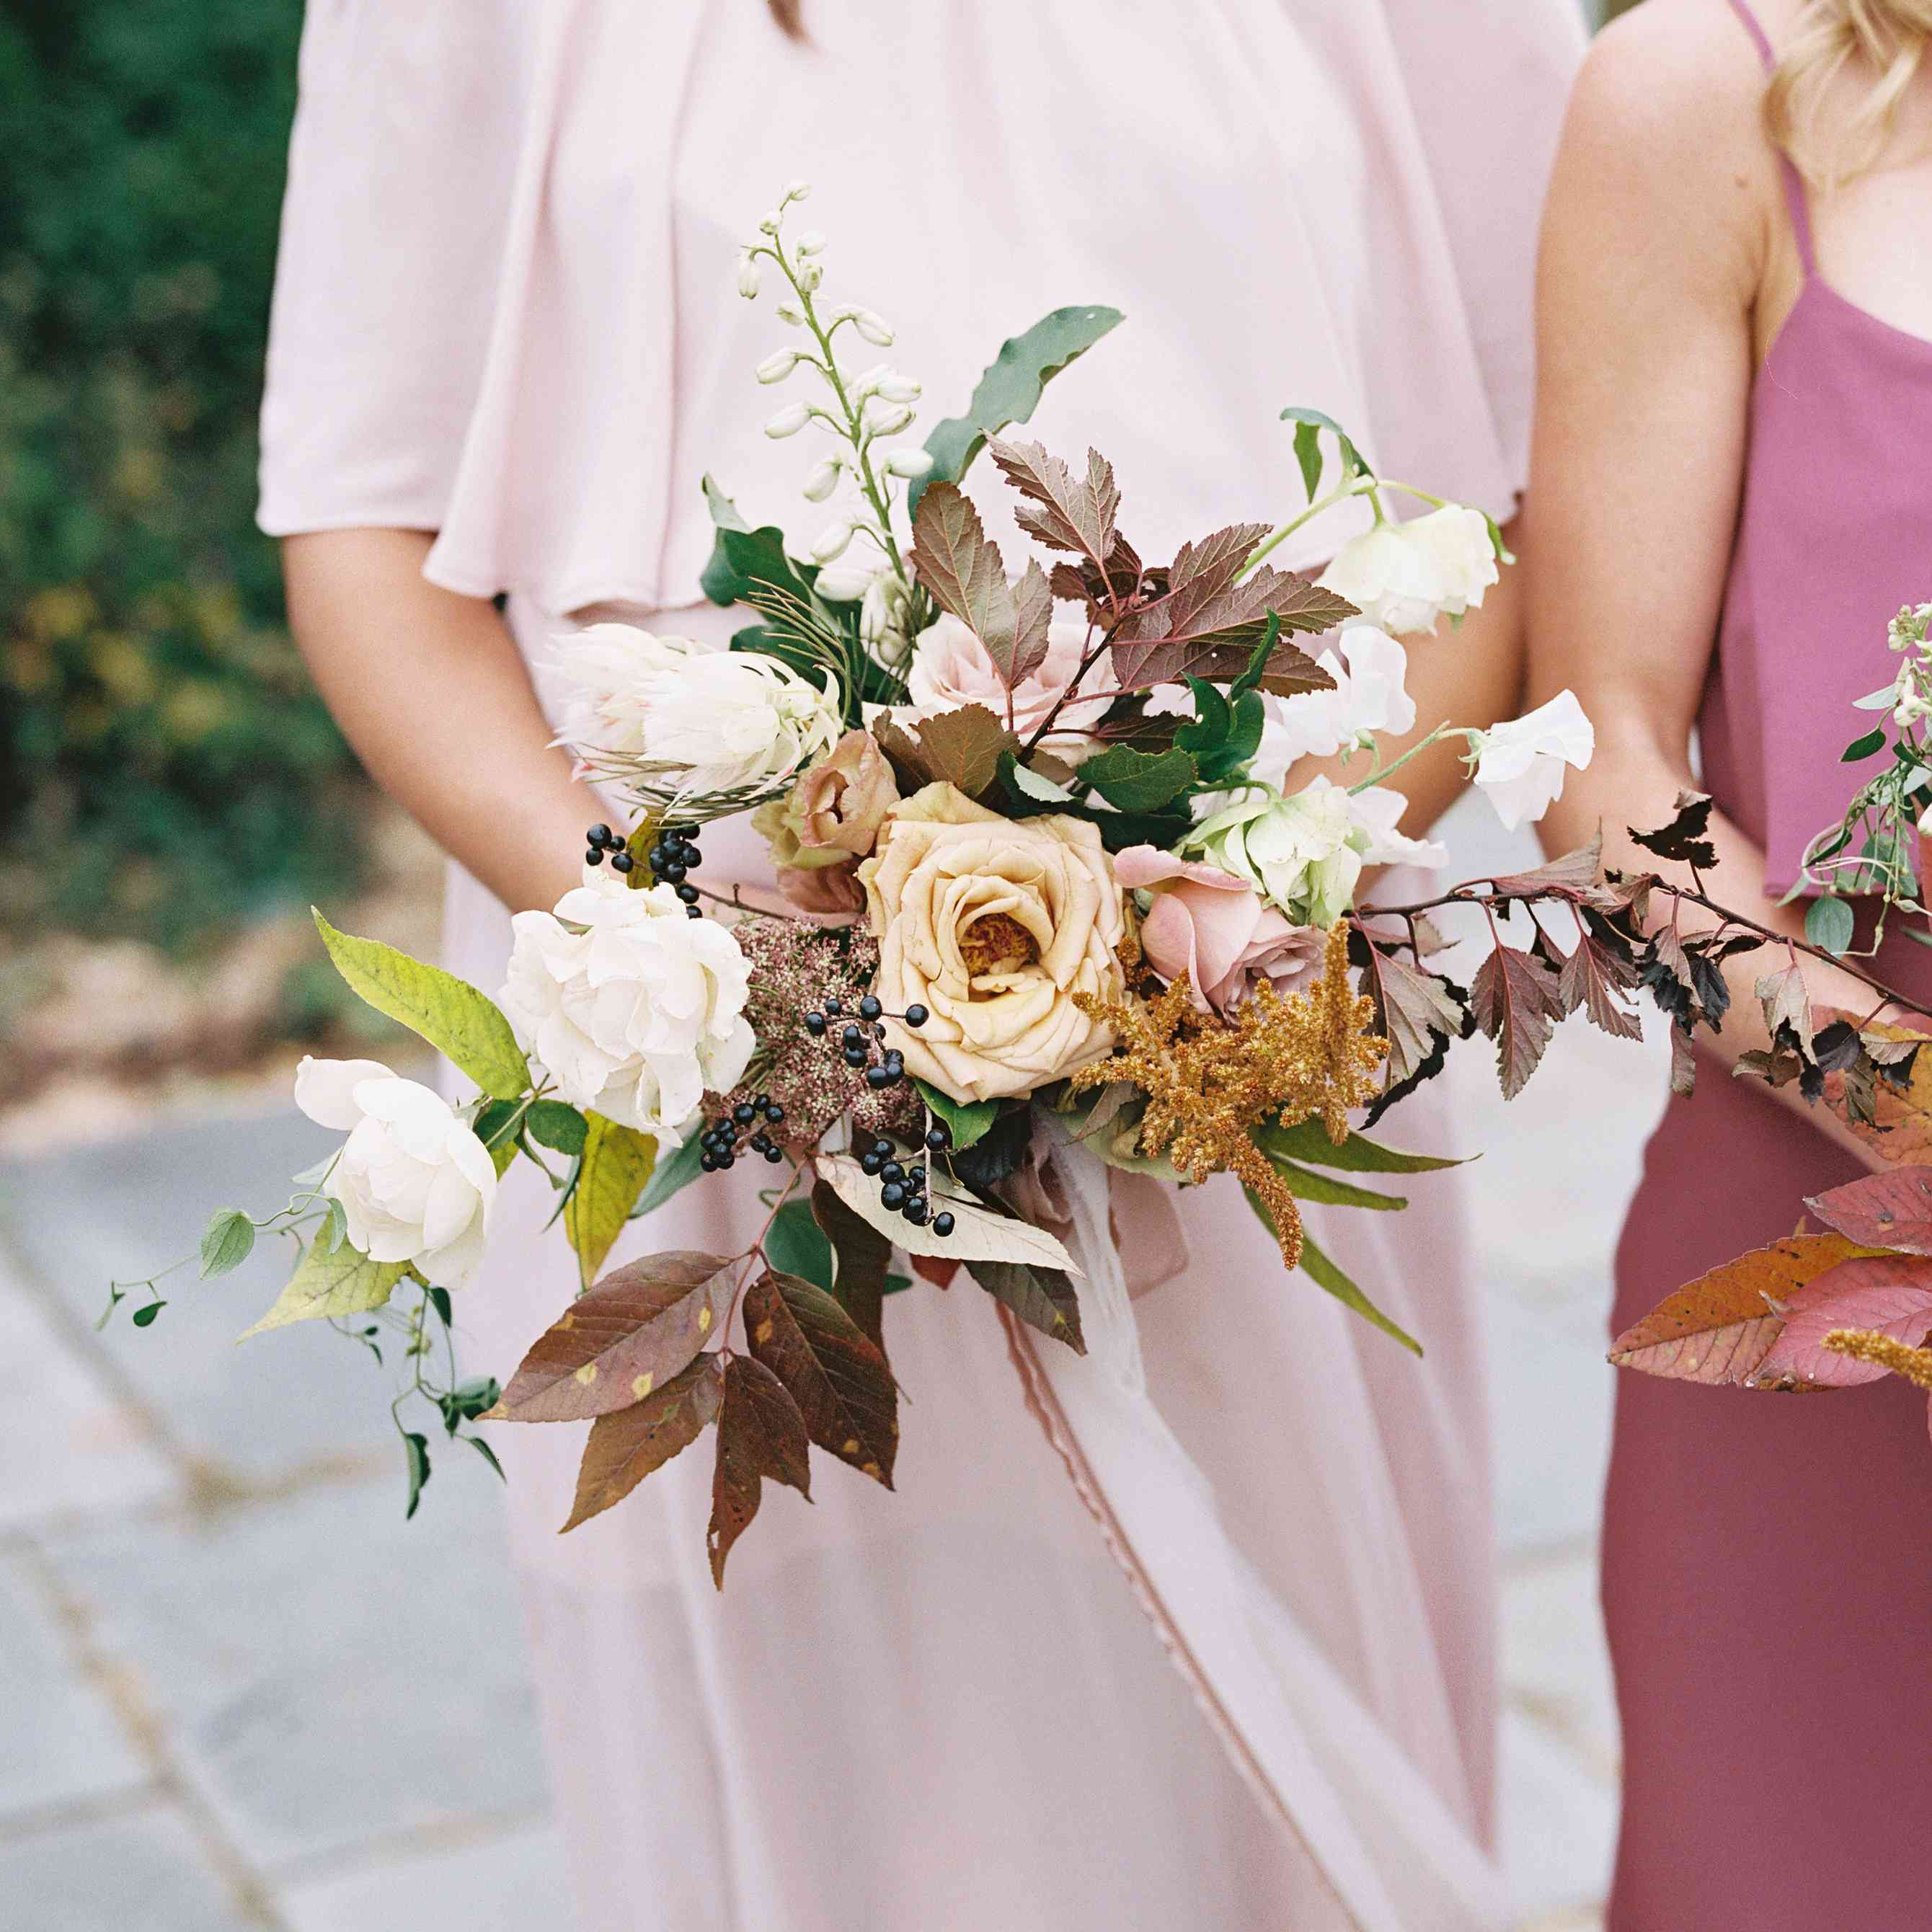 Bridesmaid bouquet consisting of hellebores, Queen Anne's lace, and maidenhair fern